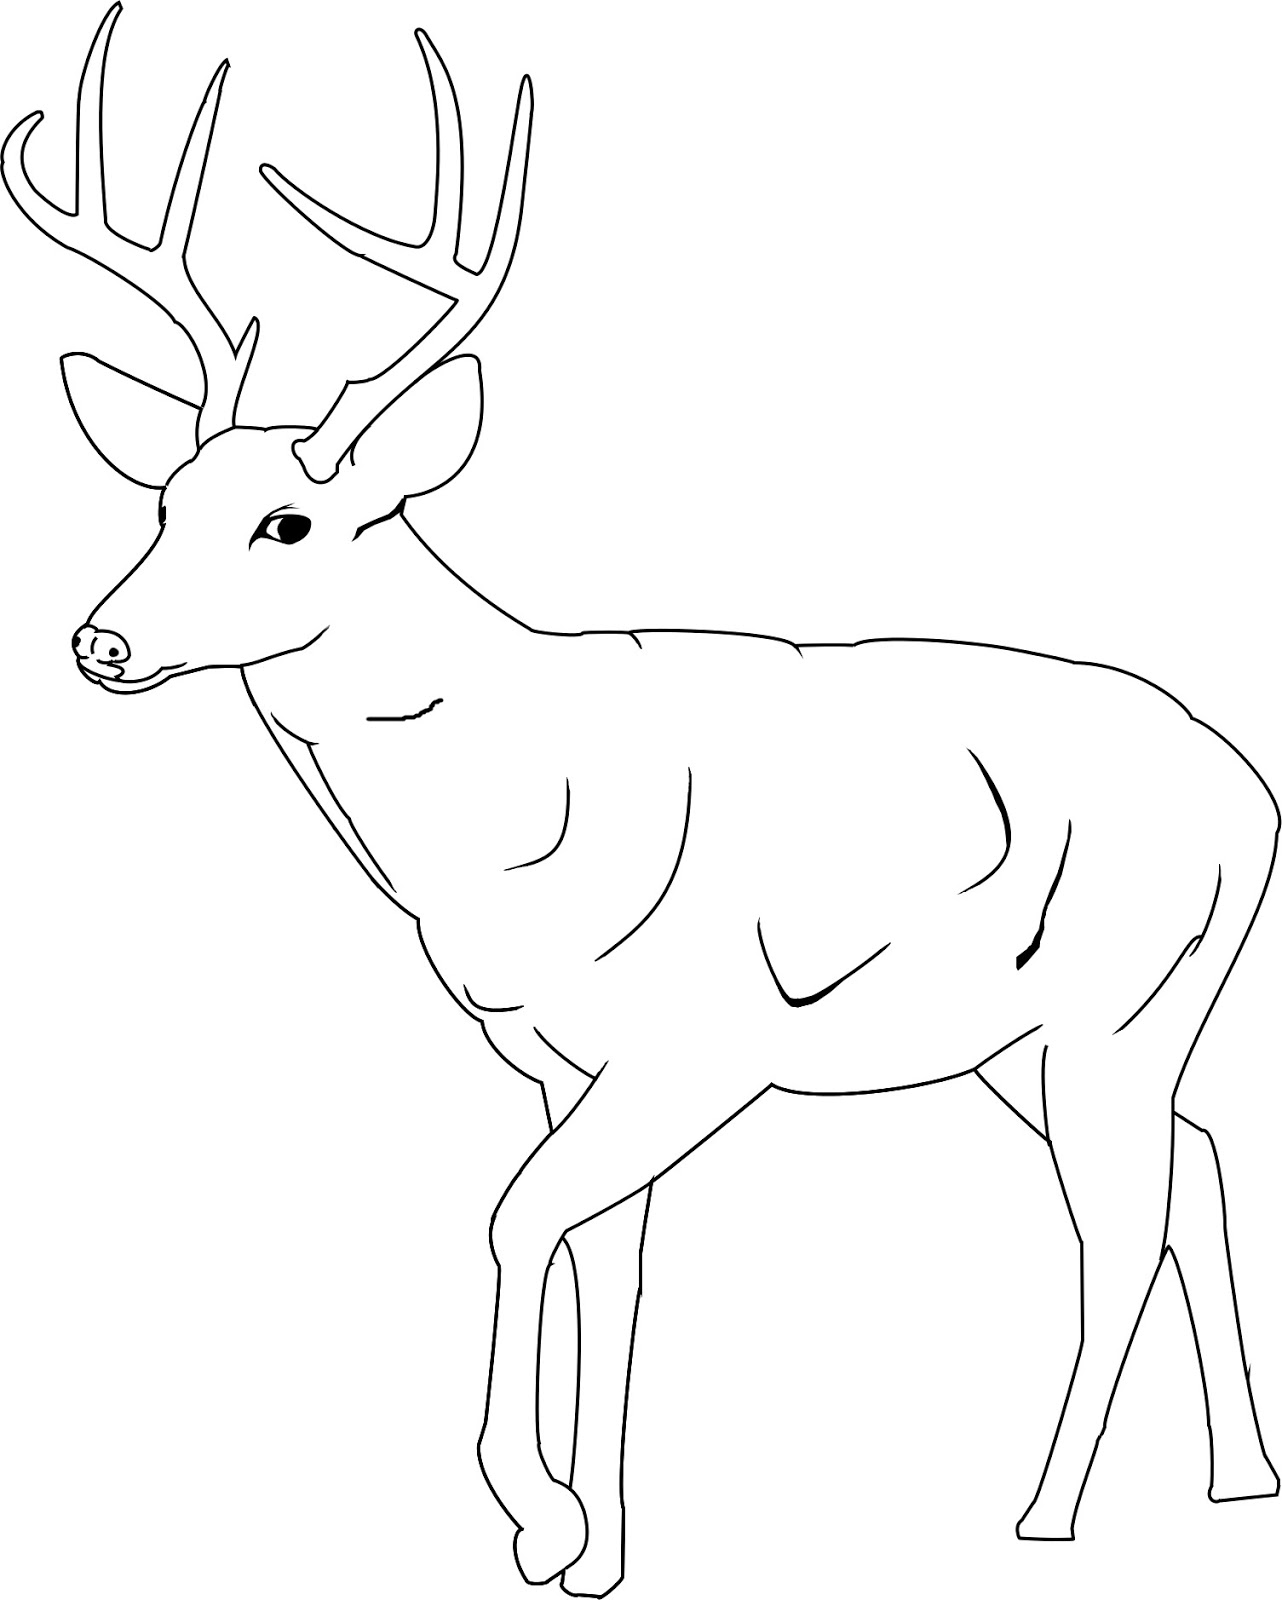 1282x1600 Printable Deer Coloring Pages For Kids Of Buck Page Animal Free